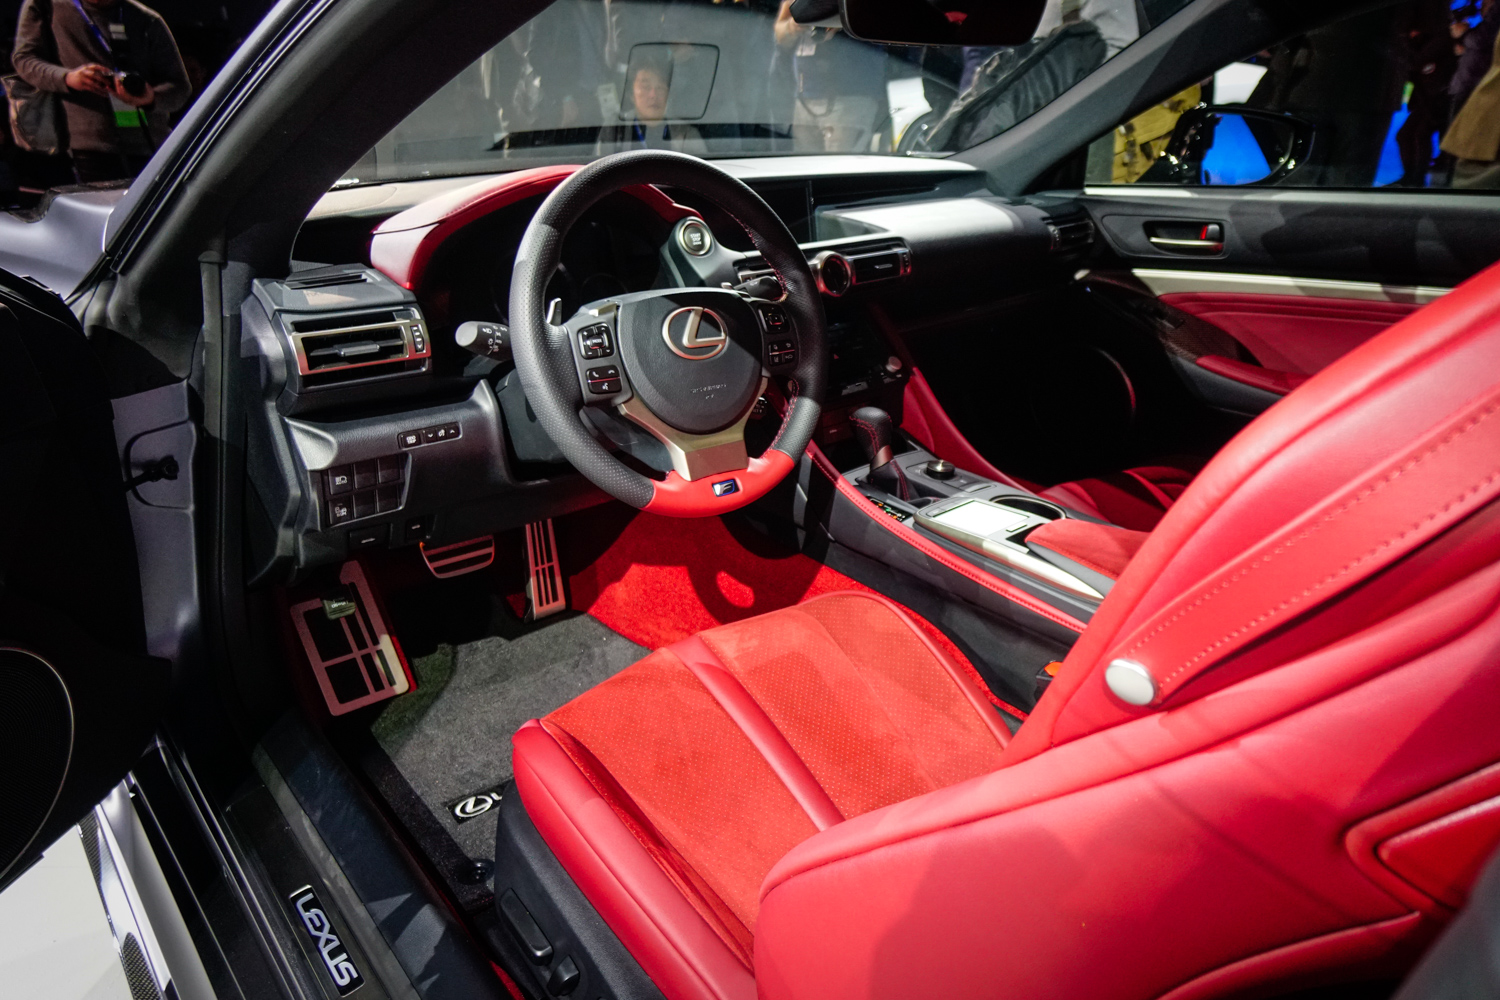 2020 Lexus RC F Track Edition interior